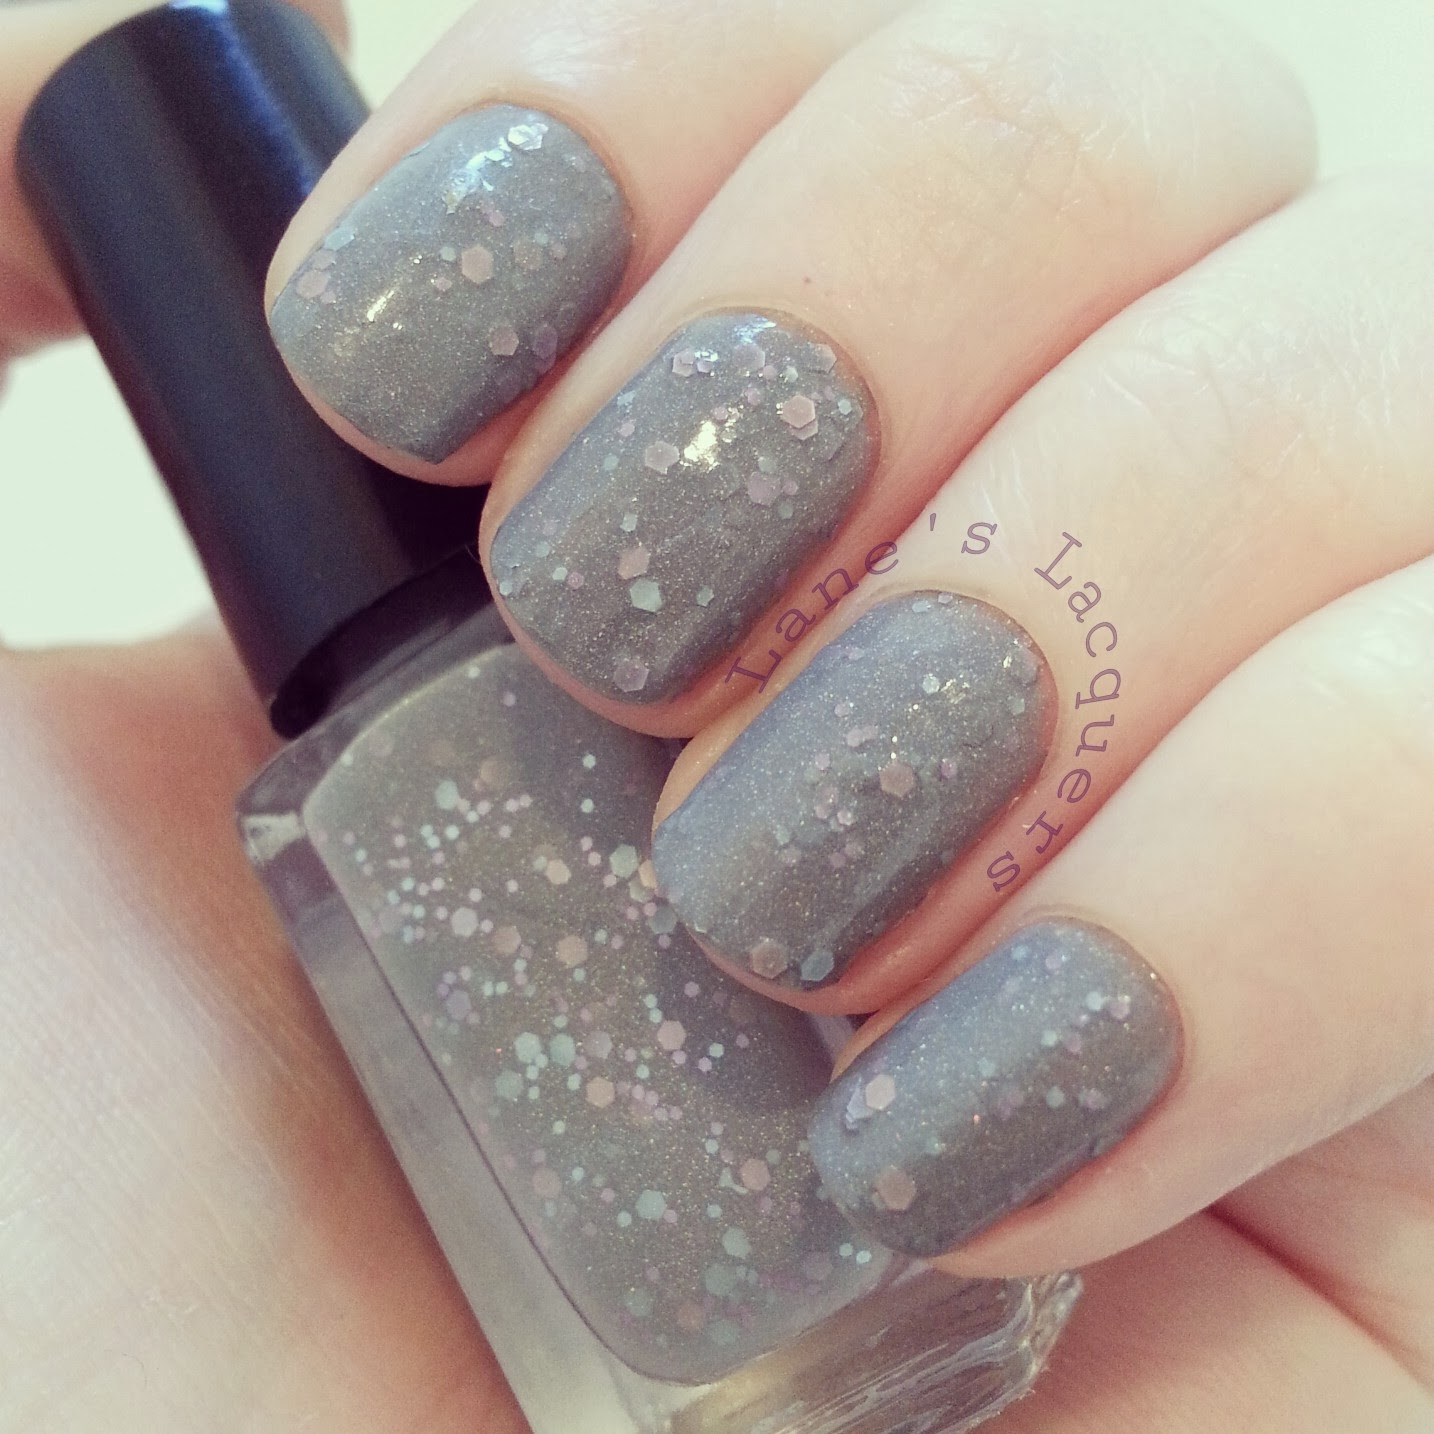 magic-goose-i-wished-for-a-castle-swatch-nails.jpg